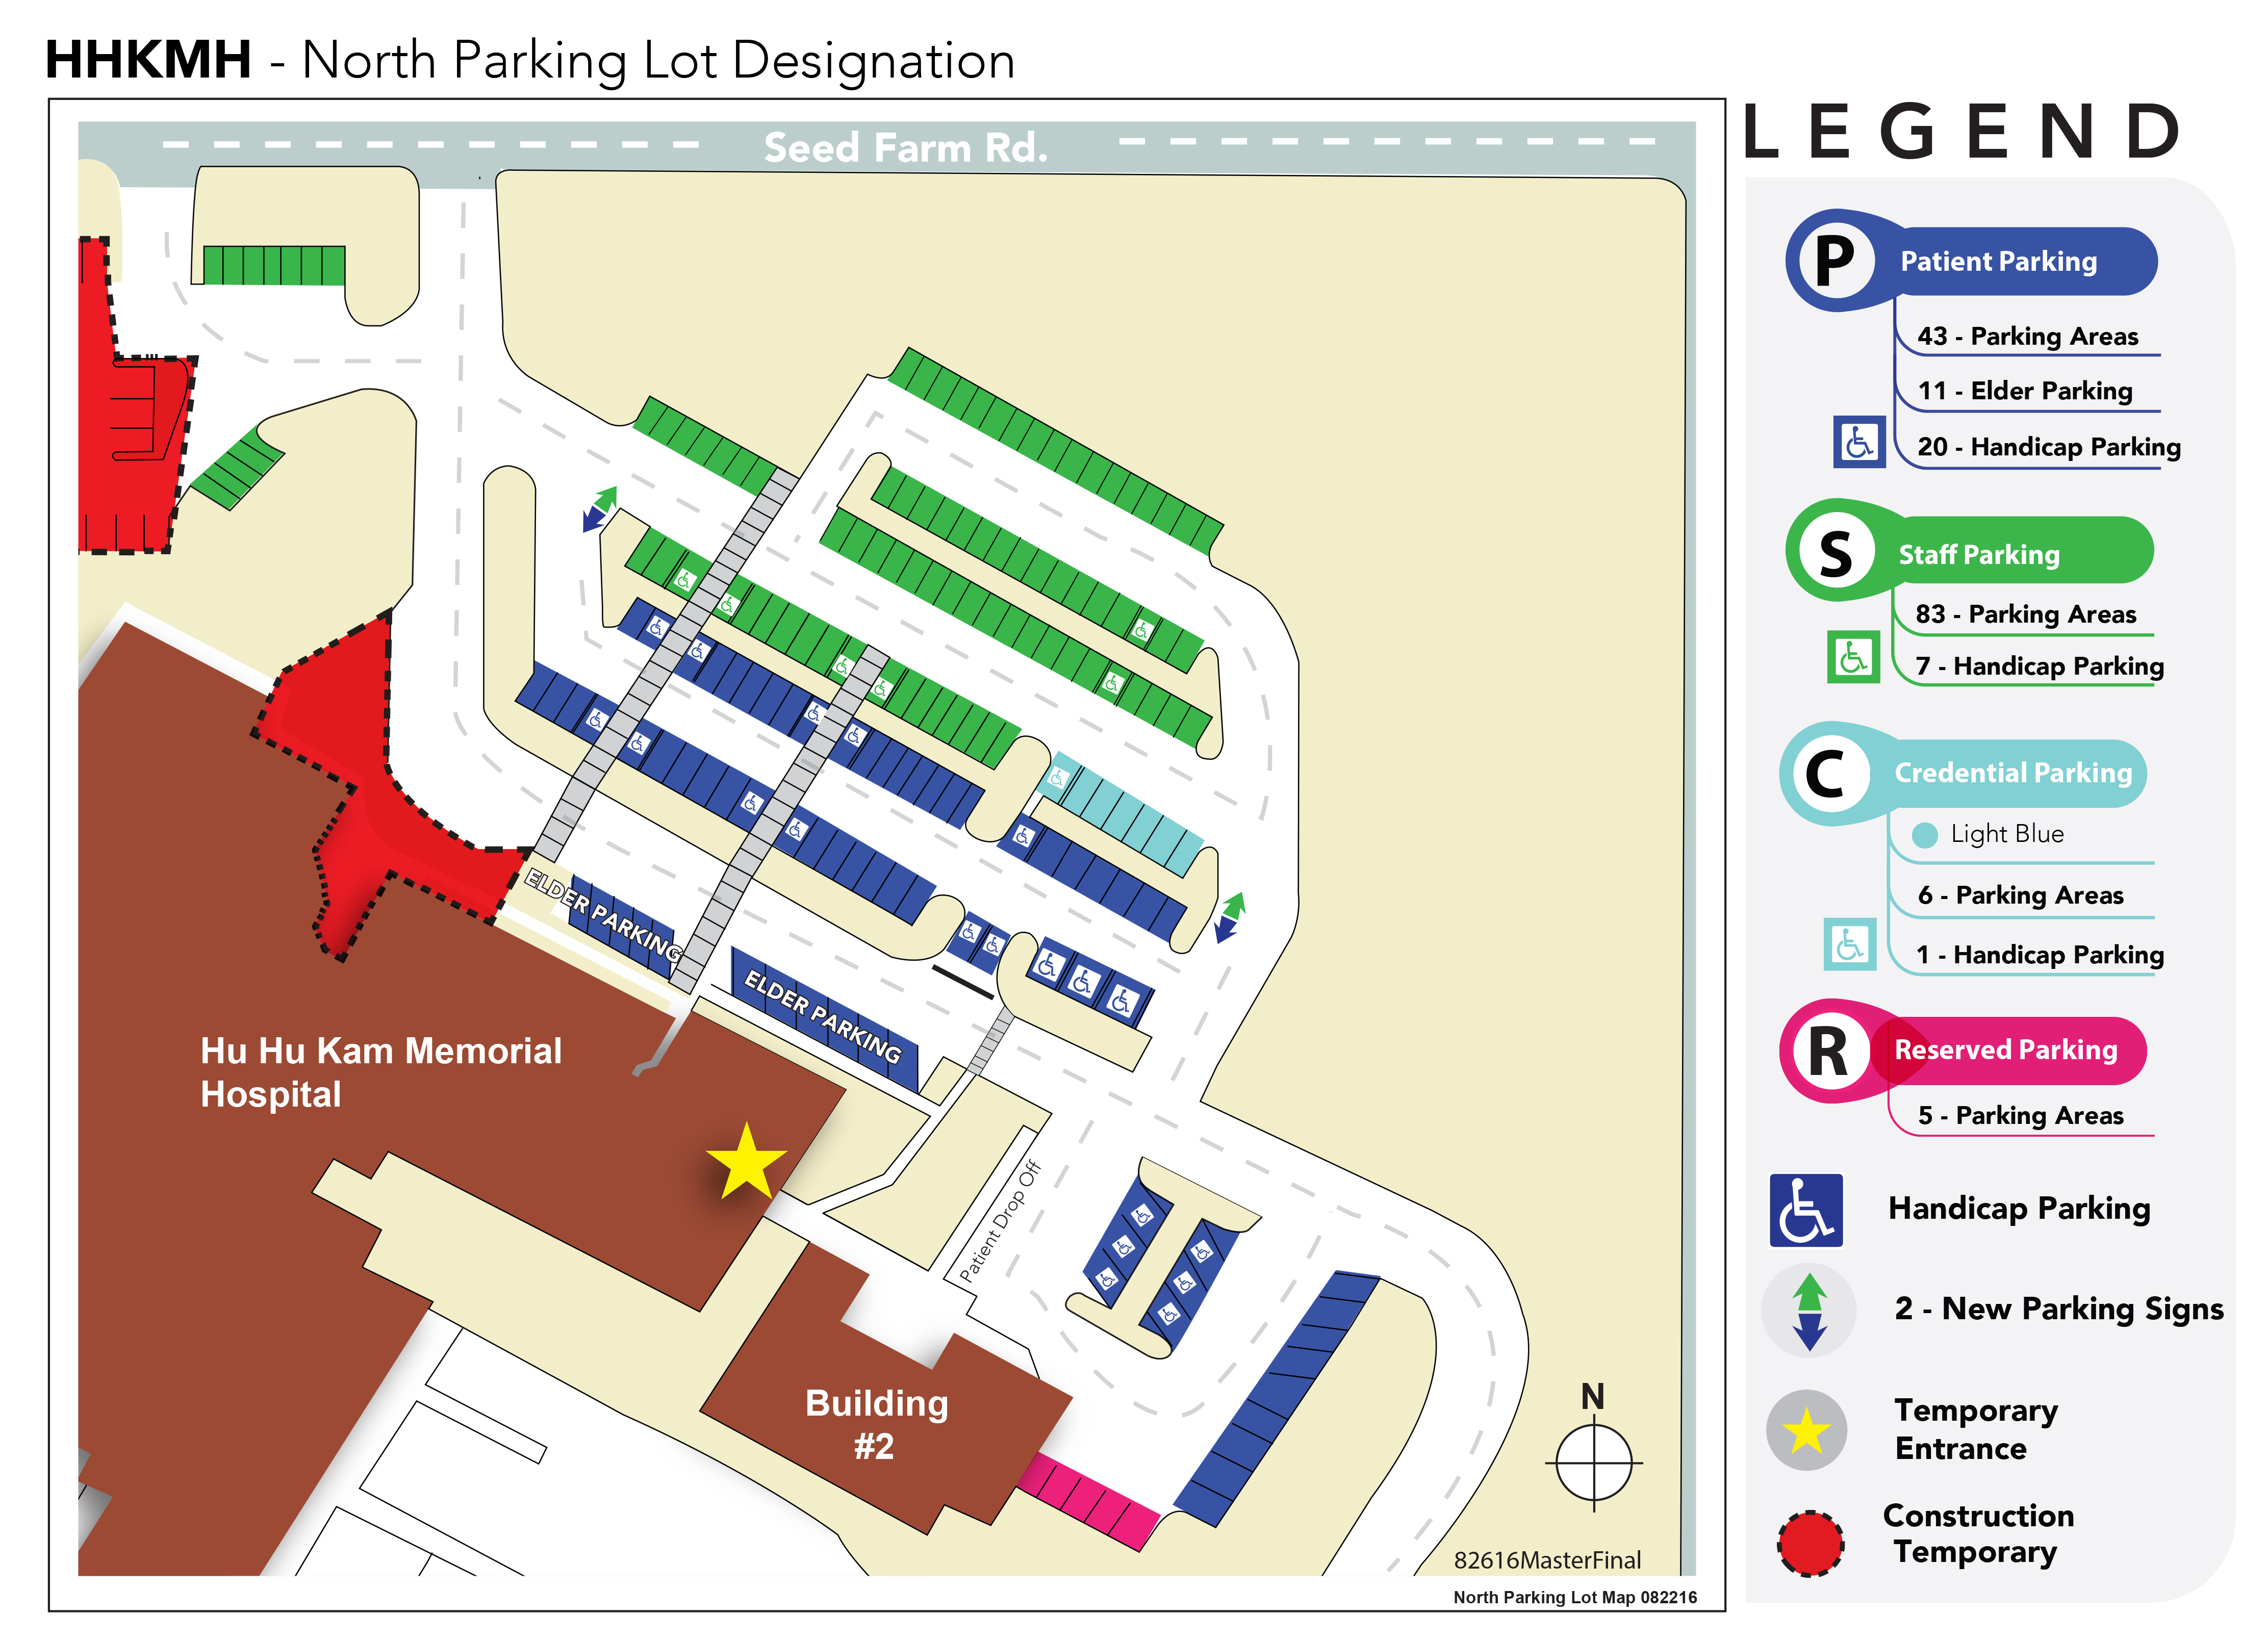 NorthParkingLot-Map-816